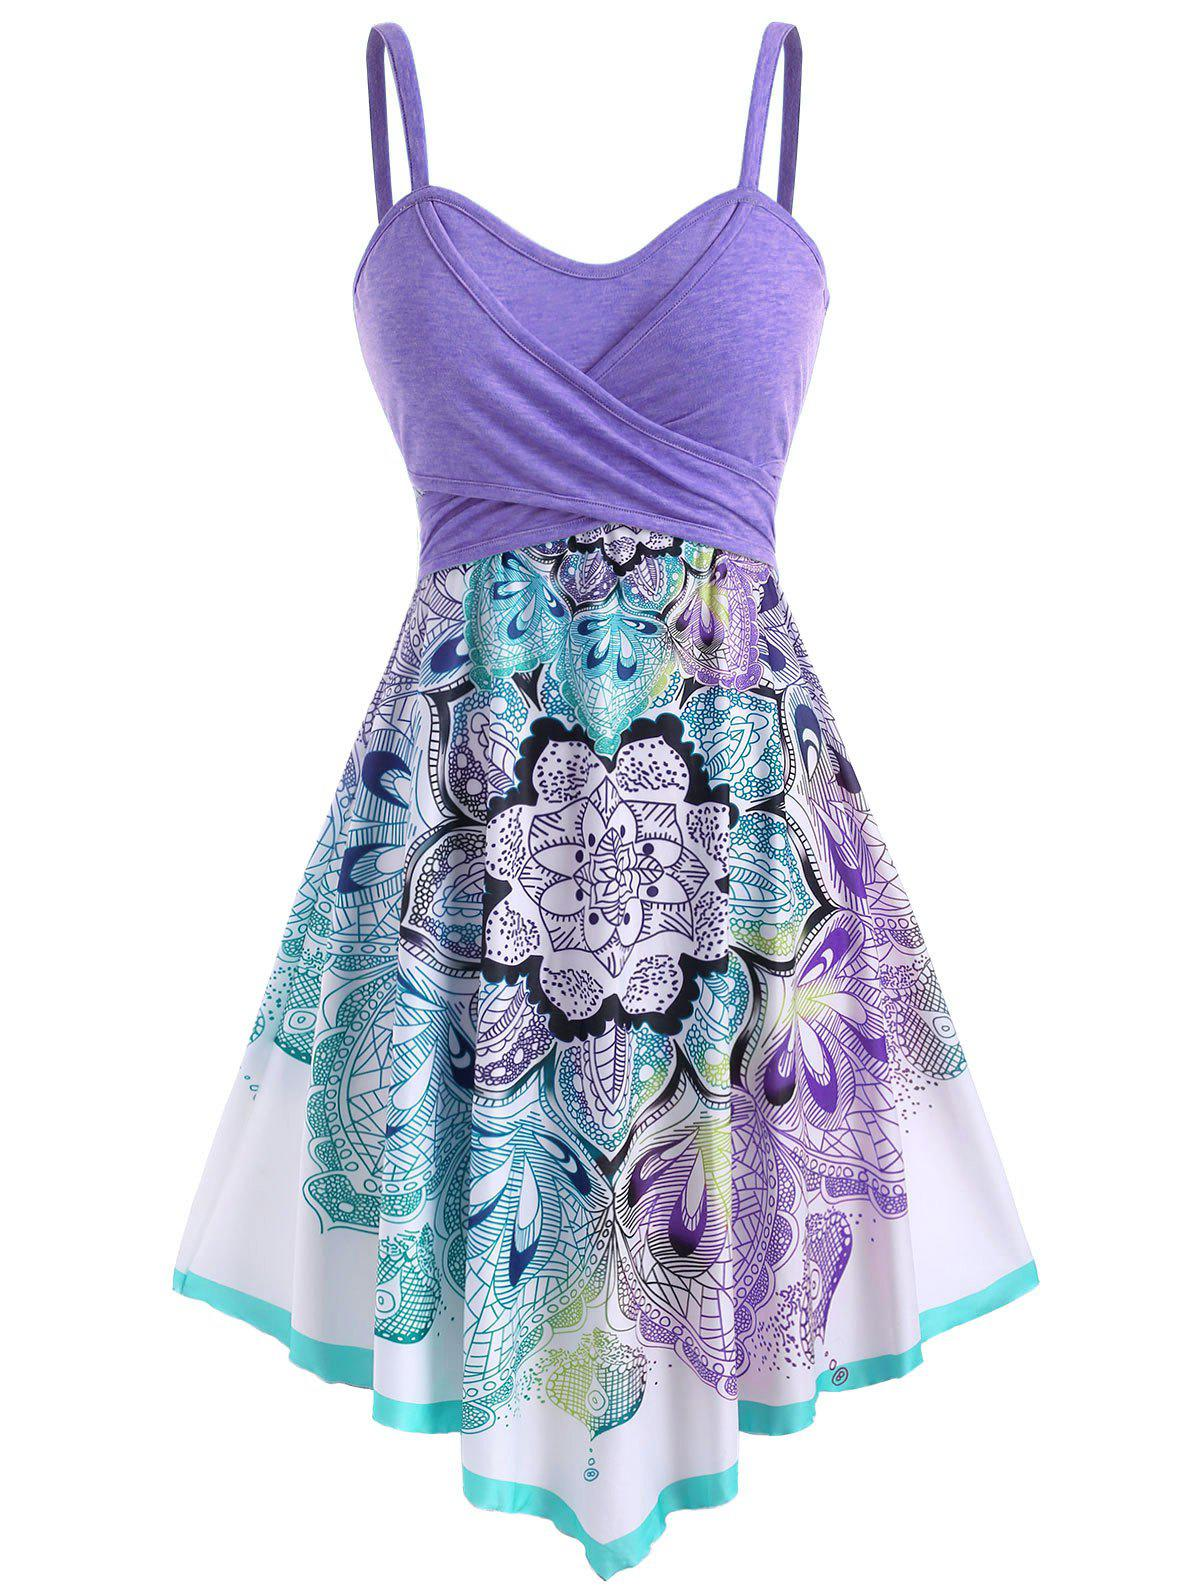 Bohemian Flower Crossover Empire Waist Dress - LIGHT PURPLE M